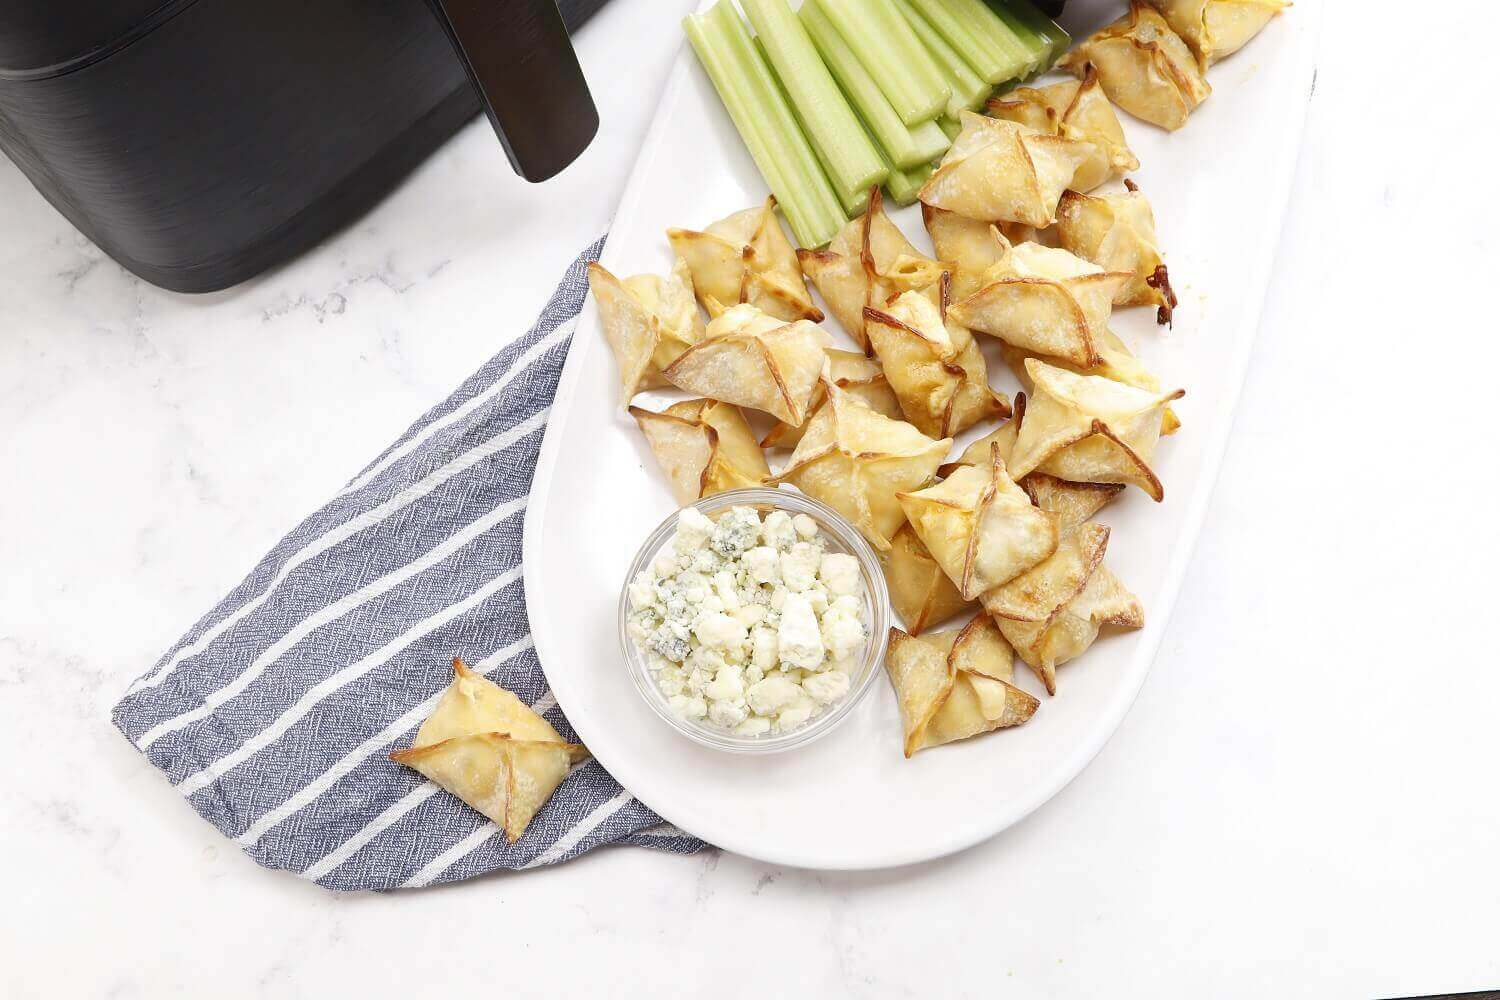 Crumbled blue cheese complements these wontons